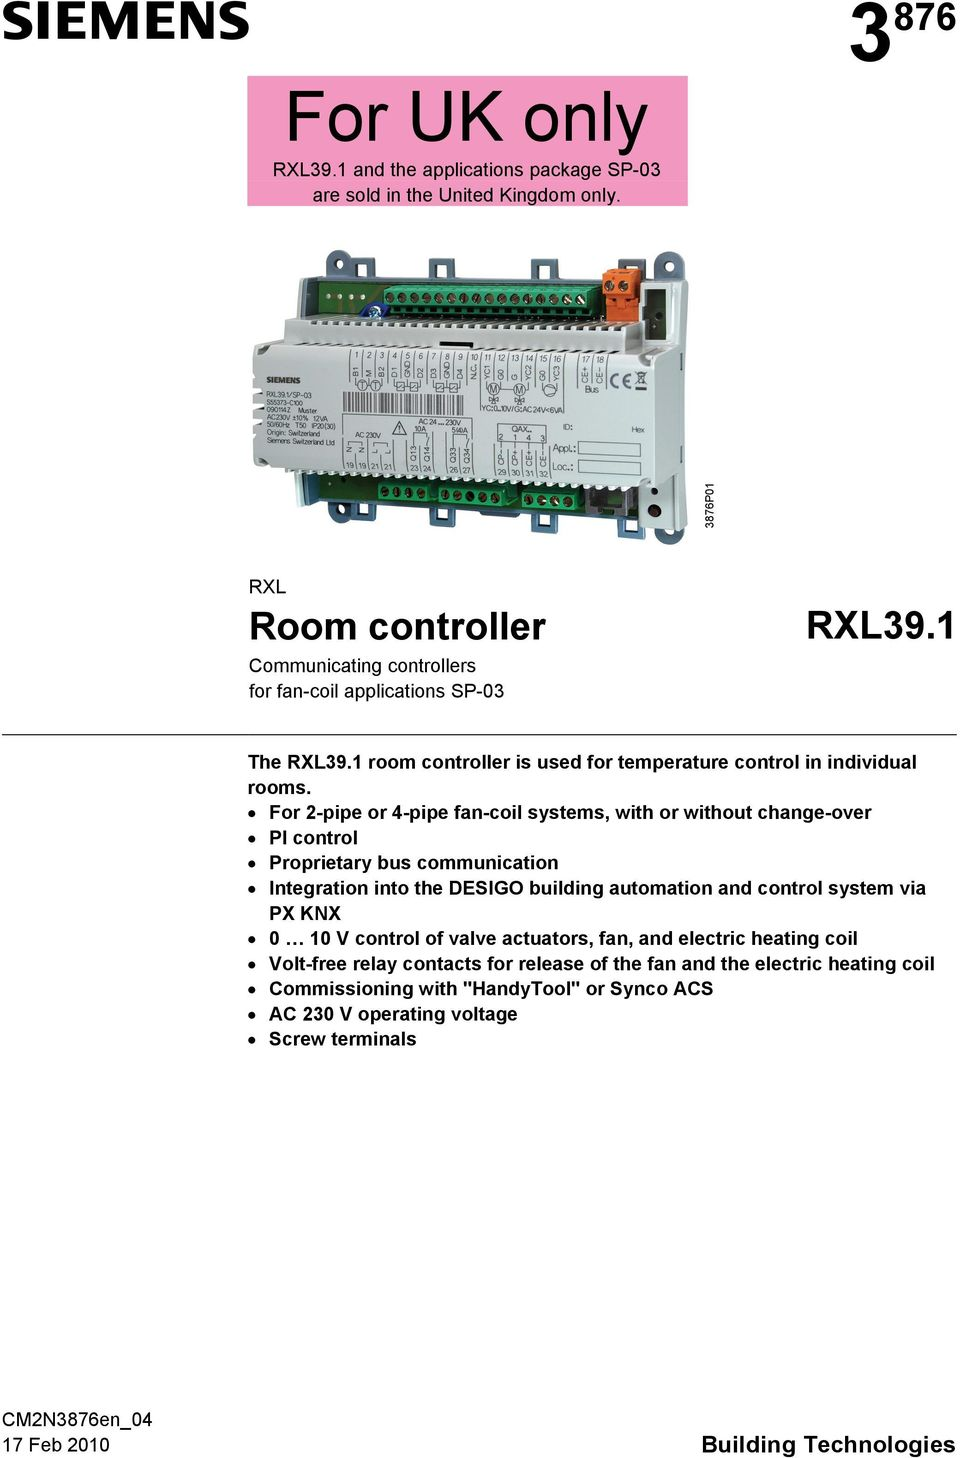 For 2-pipe or 4-pipe fan-coil systems, with or without change-over PI control Proprietary bus communication Integration into the DESIGO building automation and control system via PX